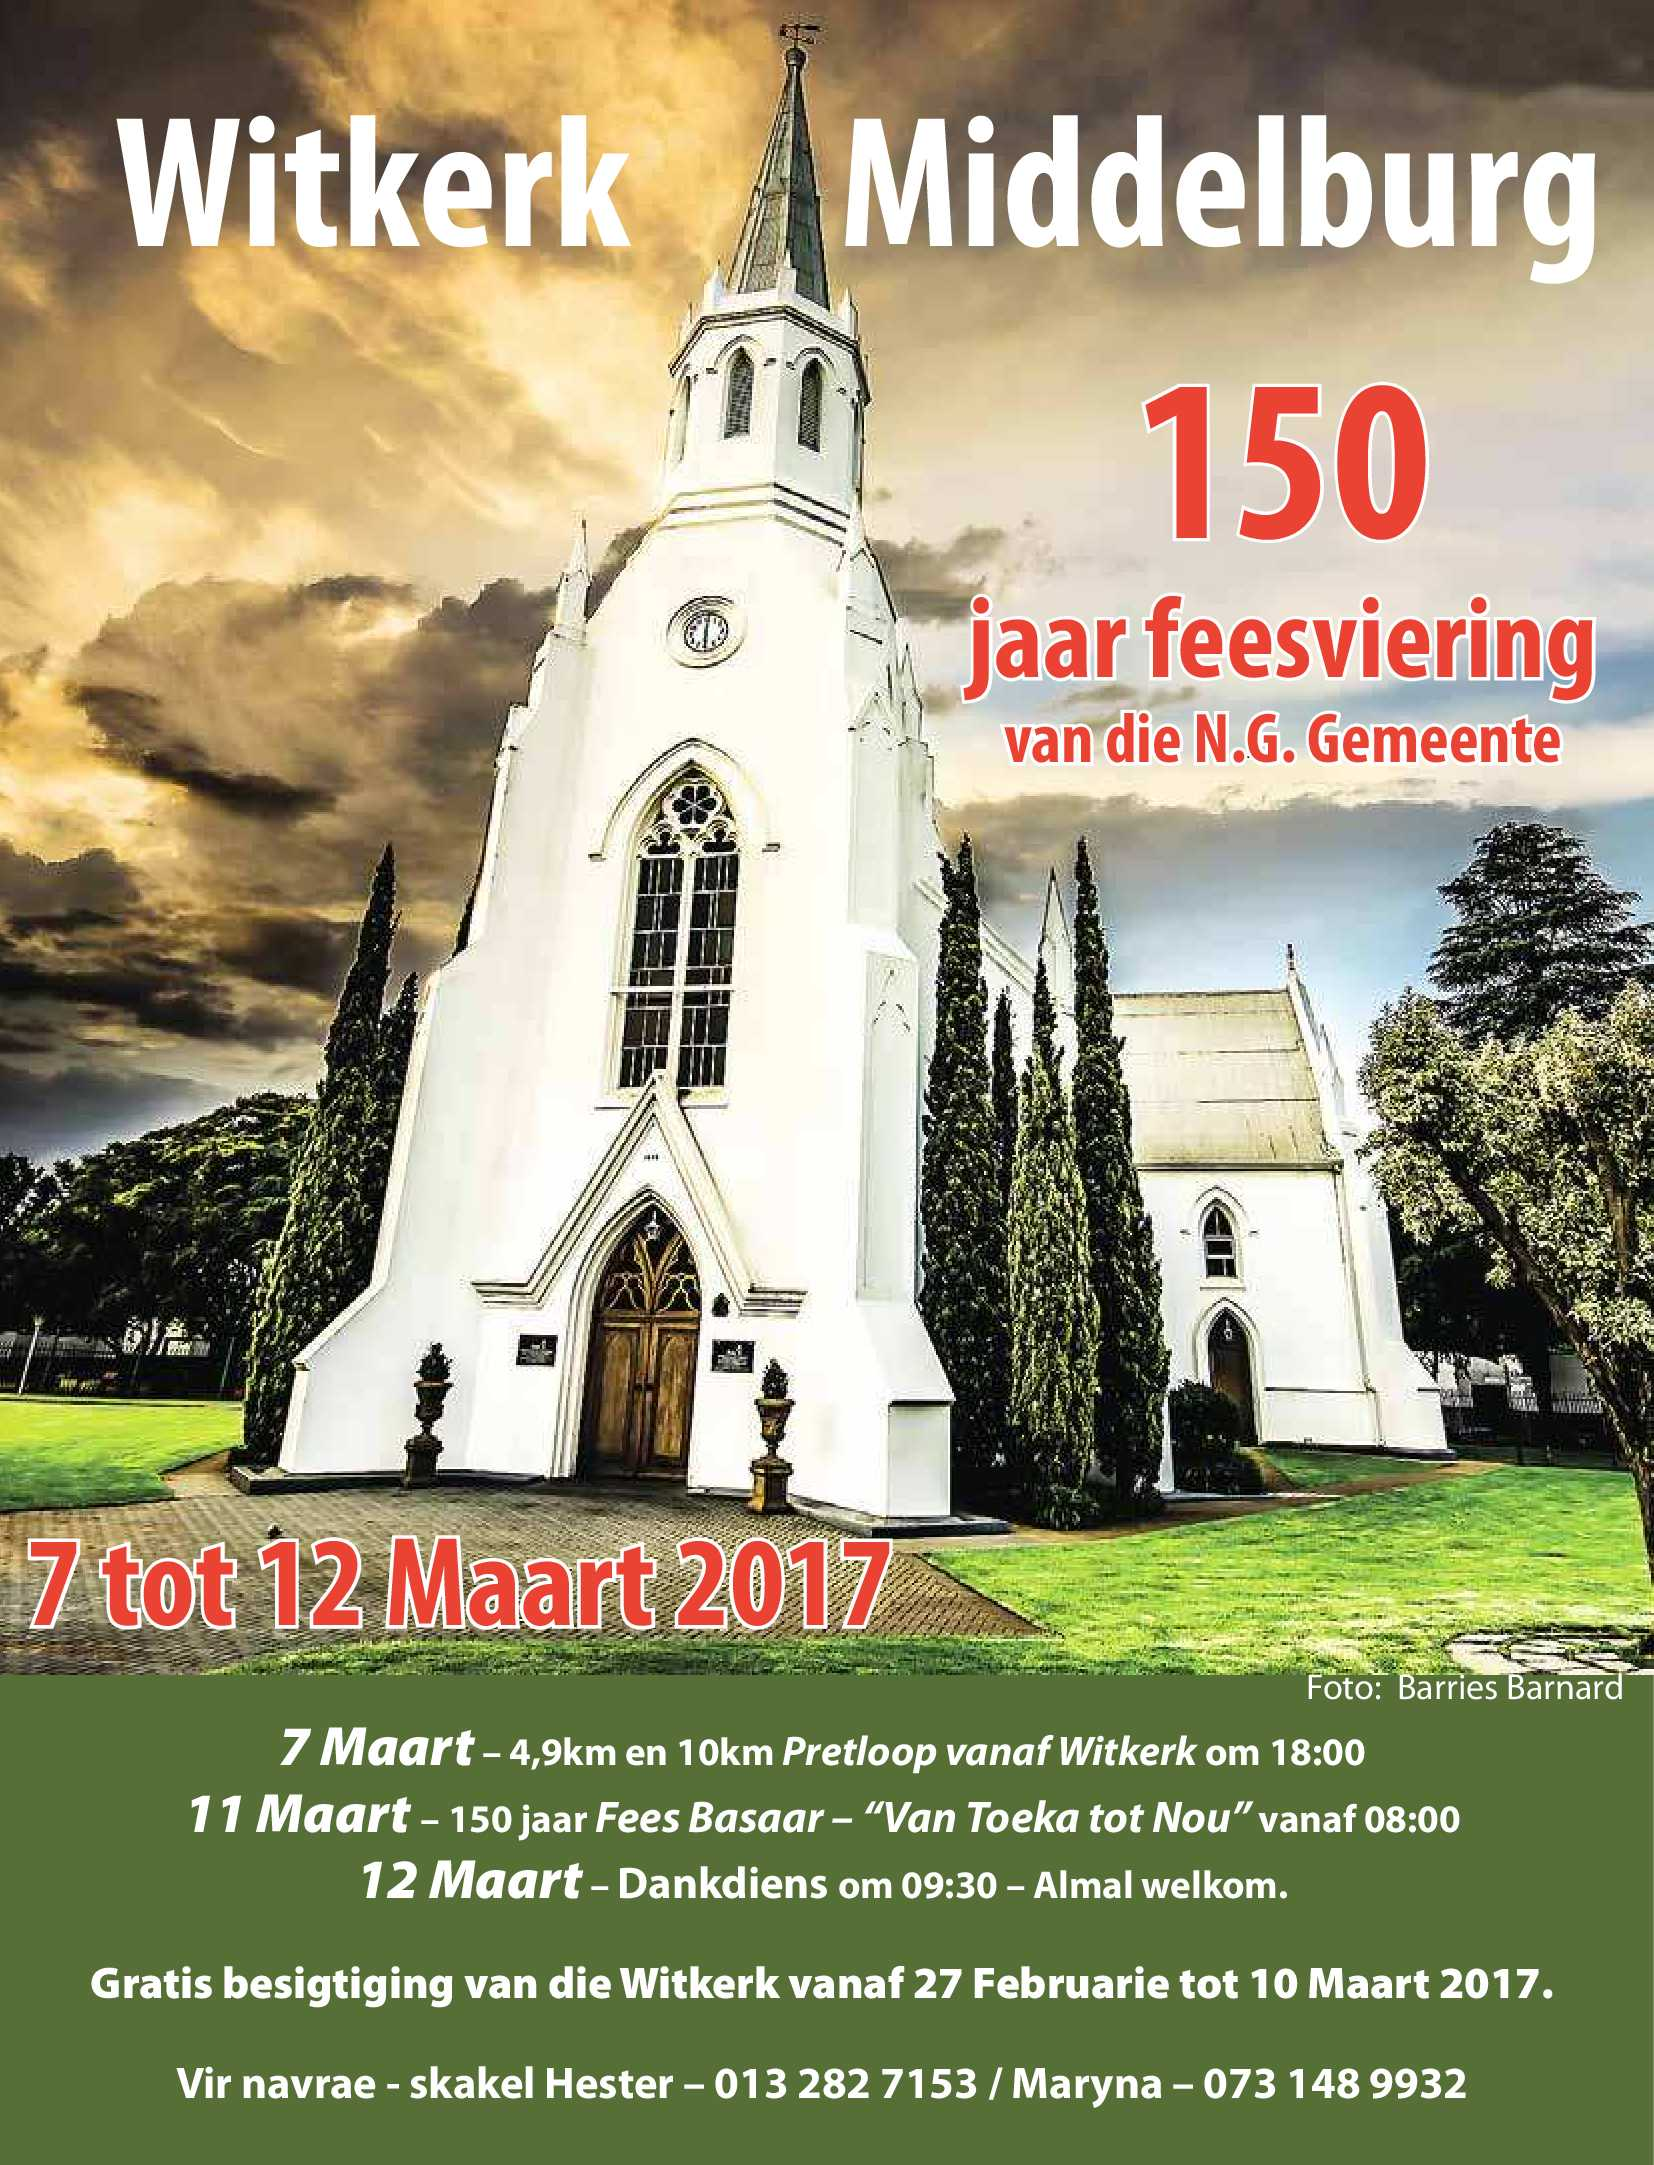 get-middelburg-march-2017-epapers-page-2